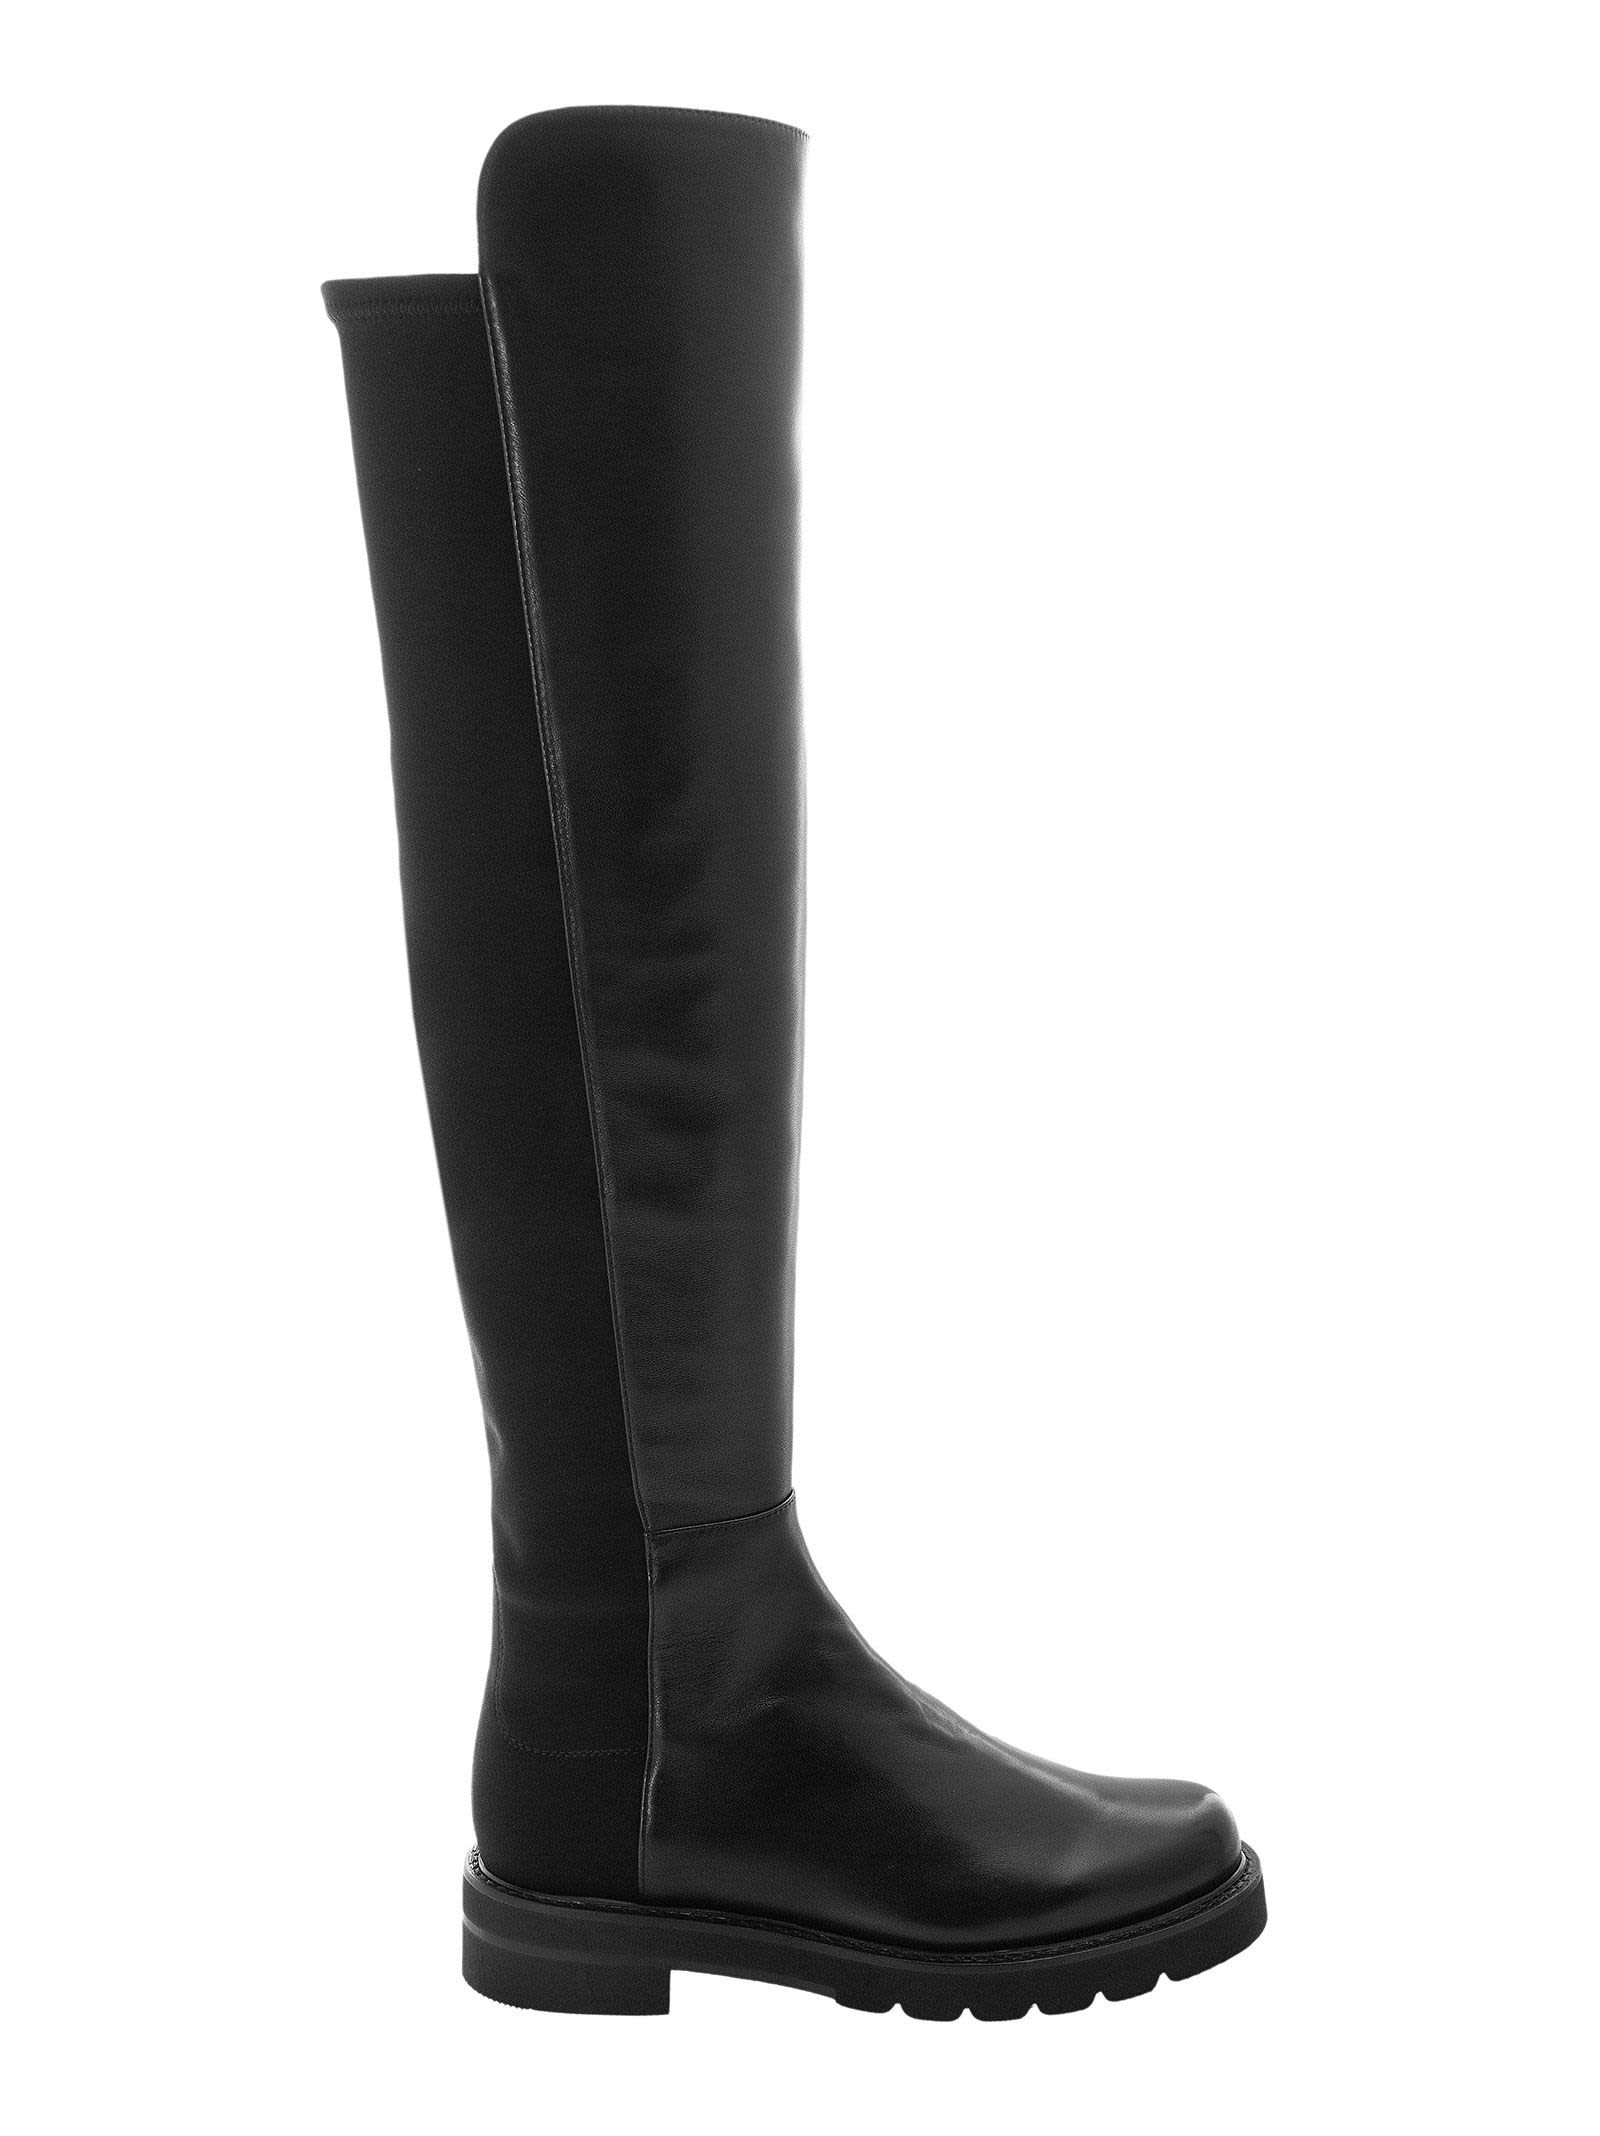 Buy Stuart Weitzman 5050 Lift - Leather Boots With Elasticated Back online, shop Stuart Weitzman shoes with free shipping